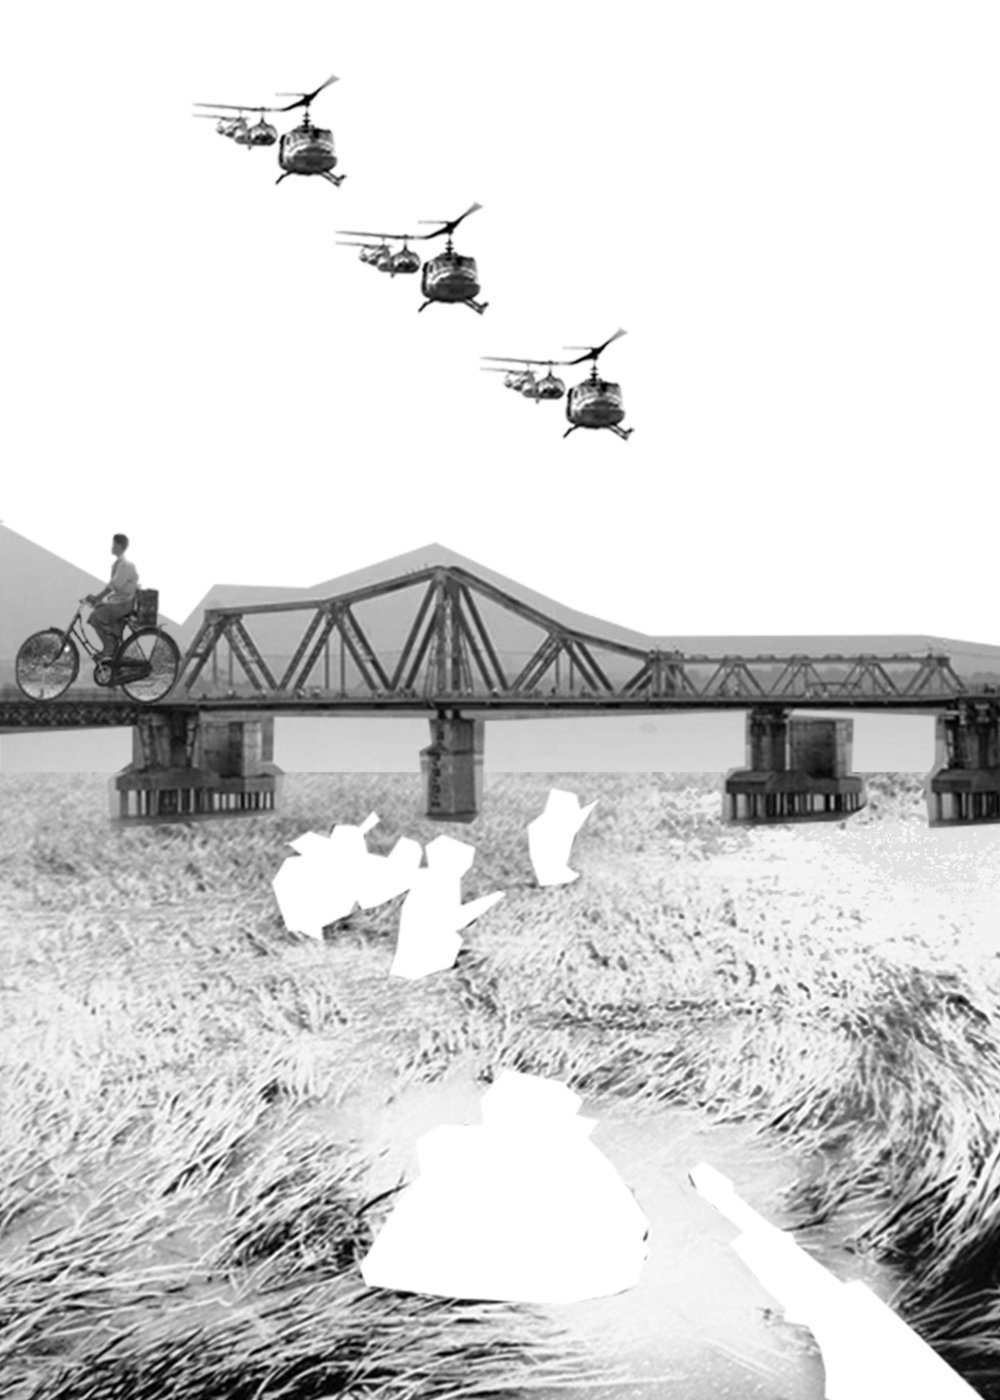 Collages of helicopters flying over the rice field with soldiers in the water being cut out as a person bikes over the bridge.